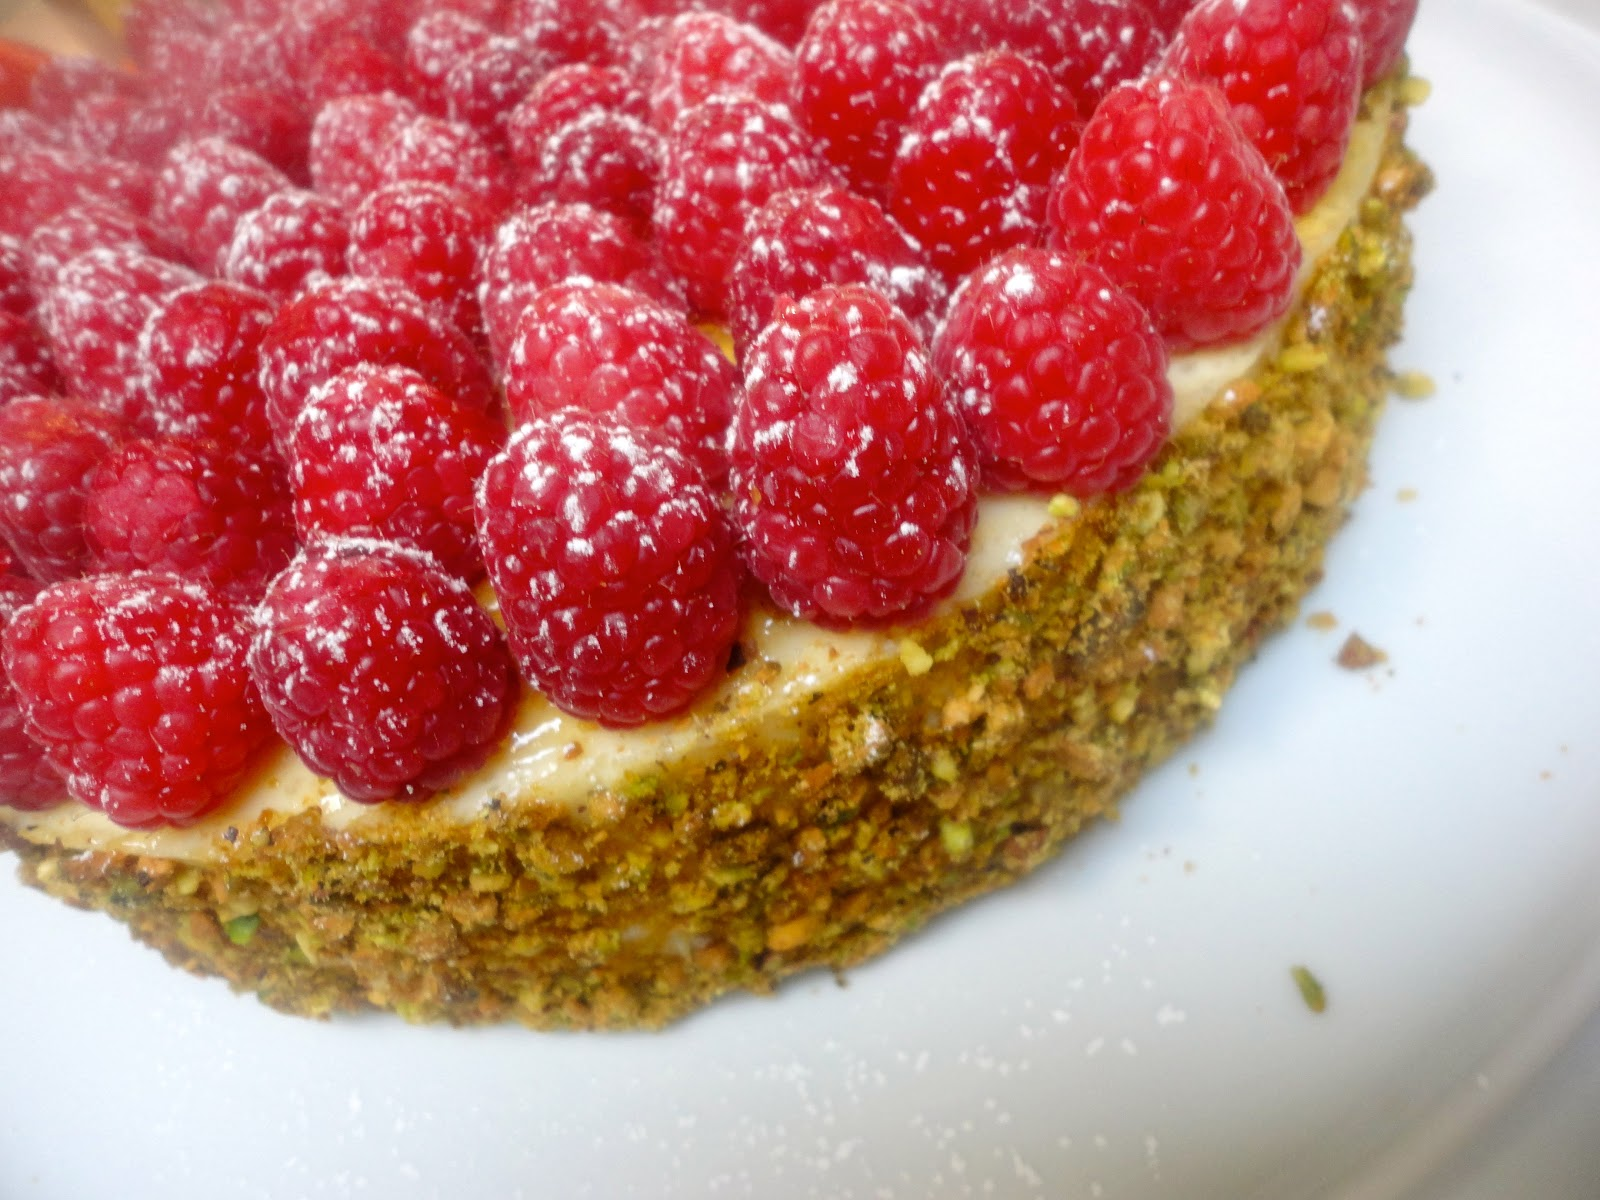 ... Pistachio Cheesecake from John Barricelli of the SoNo Baking Company